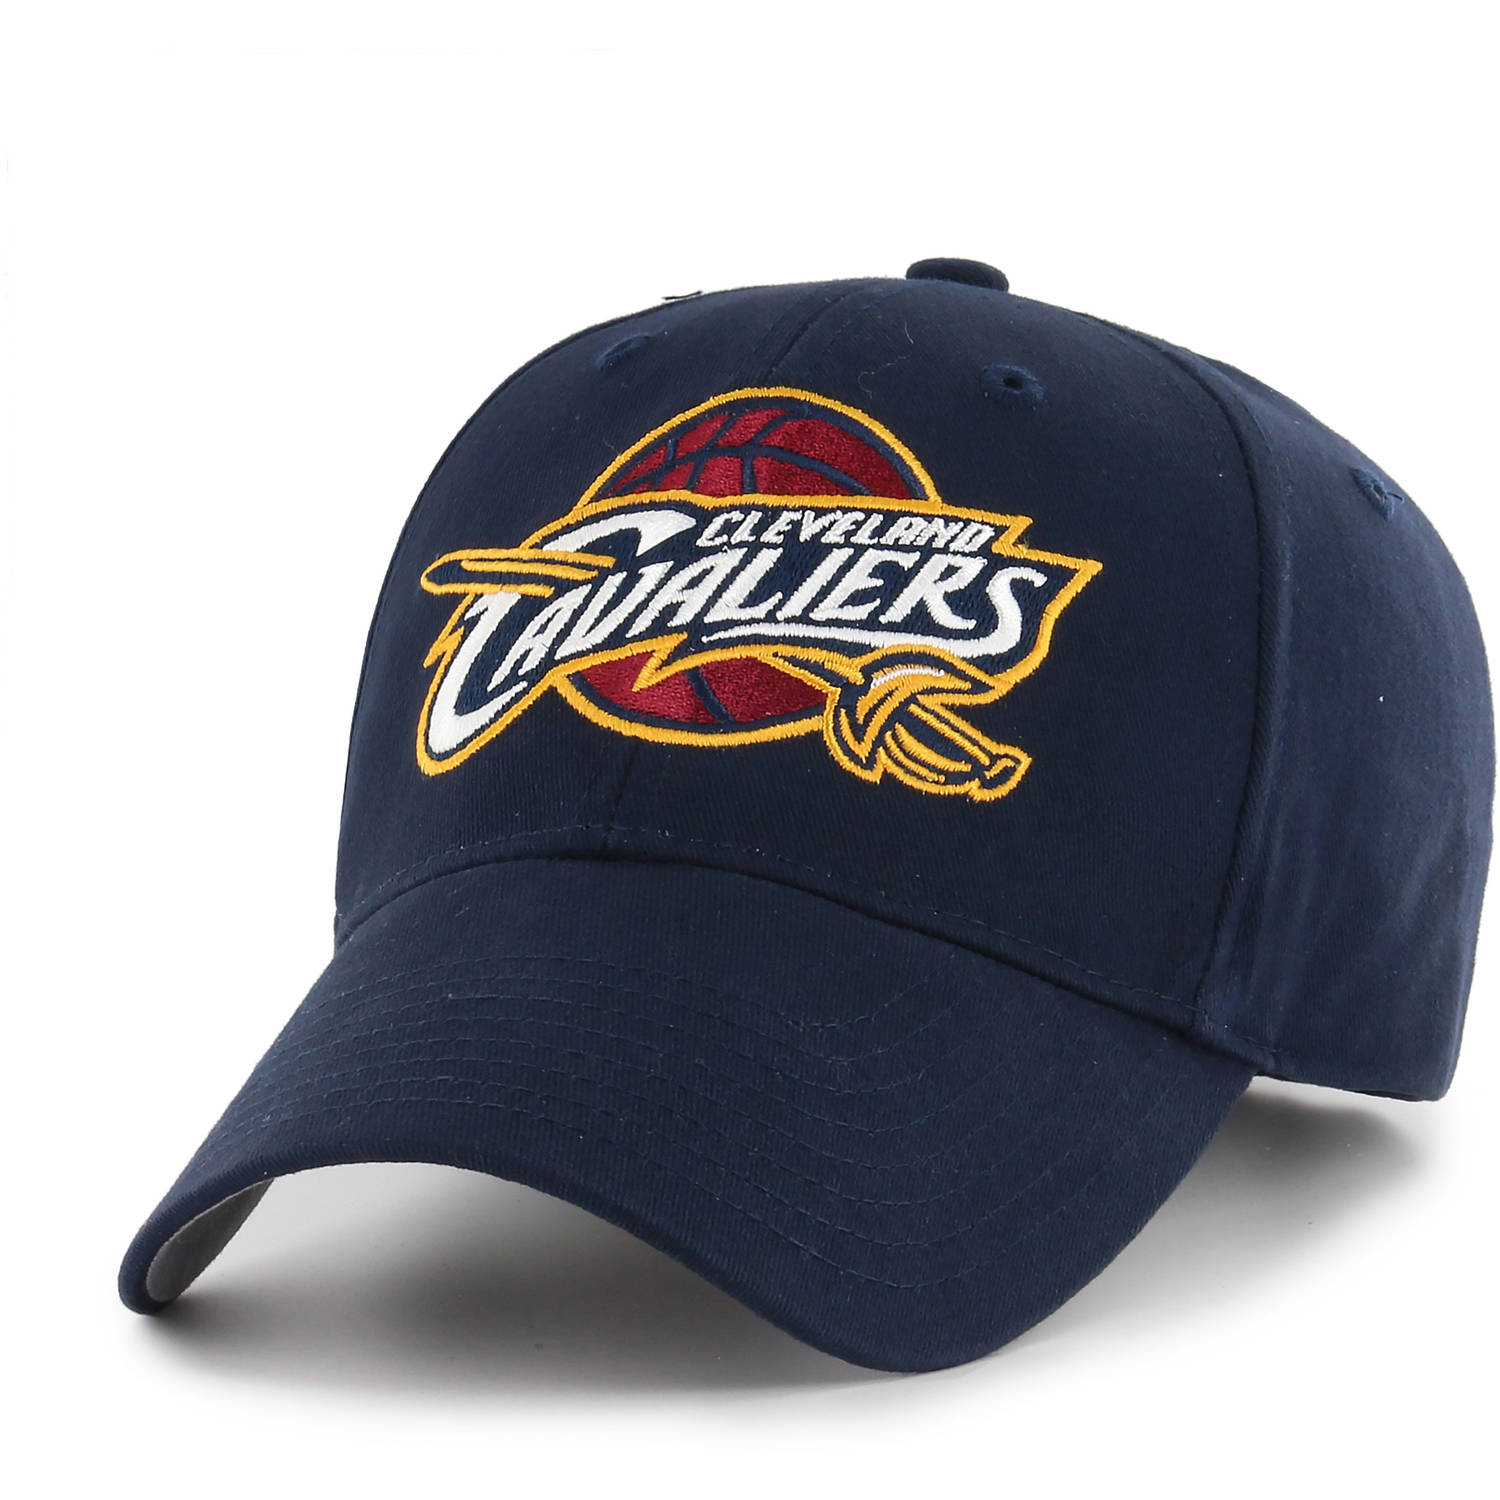 NBA Cleveland Cavaliers Basic Cap/Hat - Fan Favorite